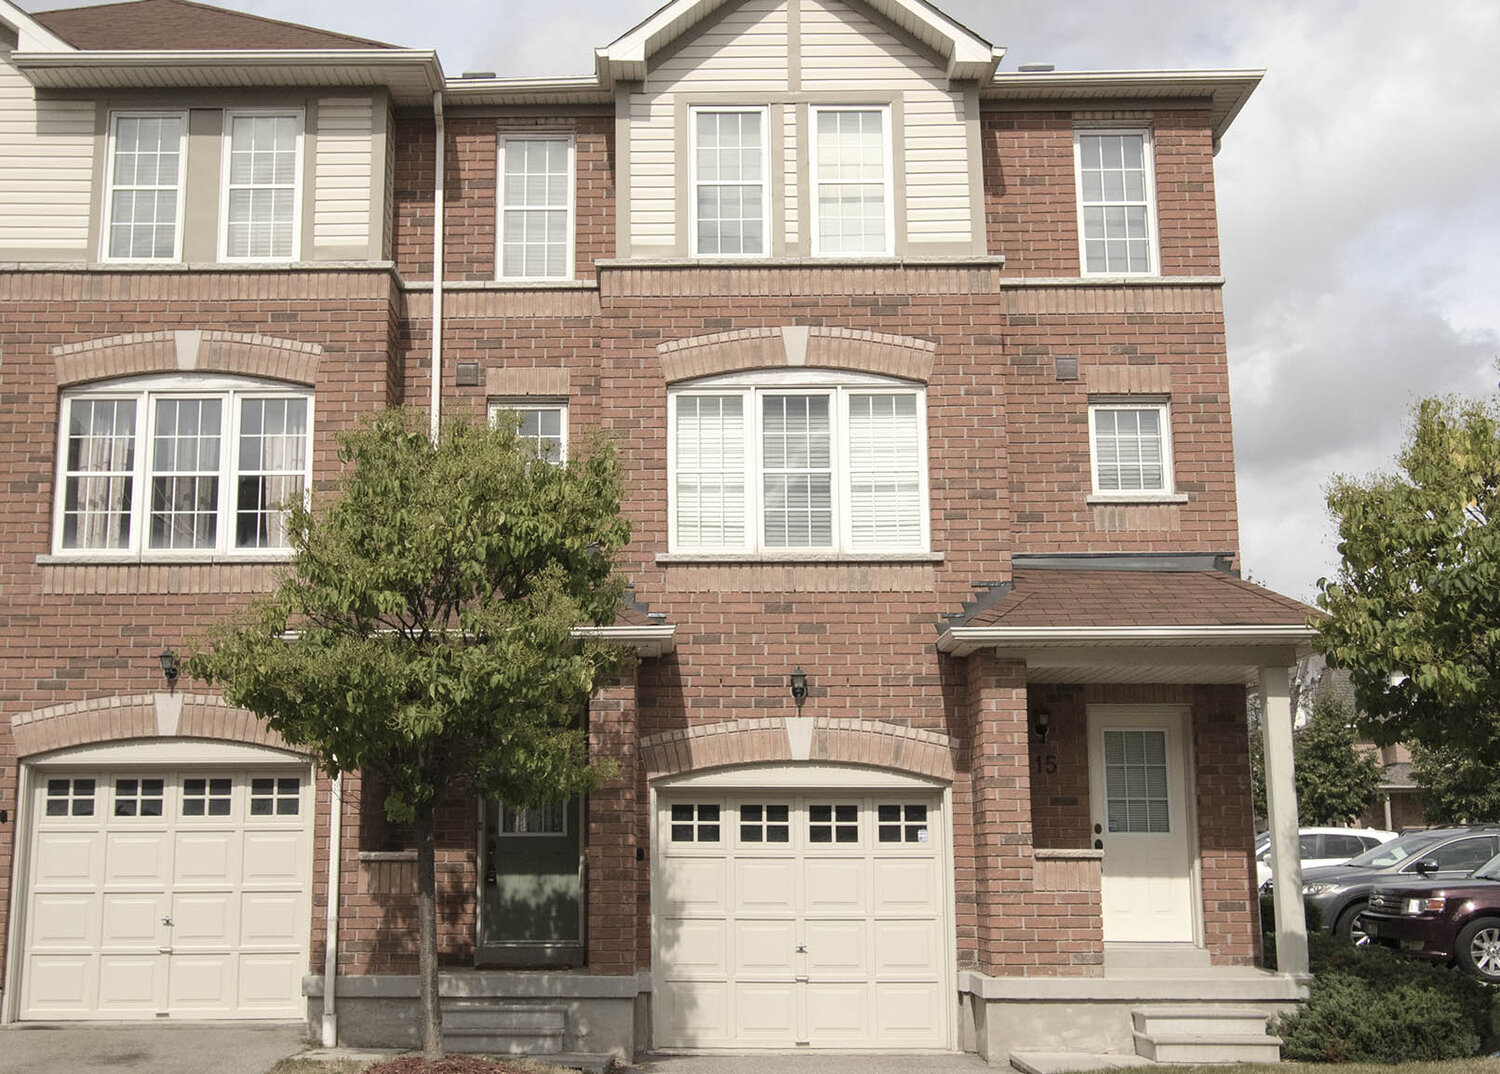 #13- 3045 Breakwater Court, Mississauga - For Sale $659,000 | 賣出了要價的98%